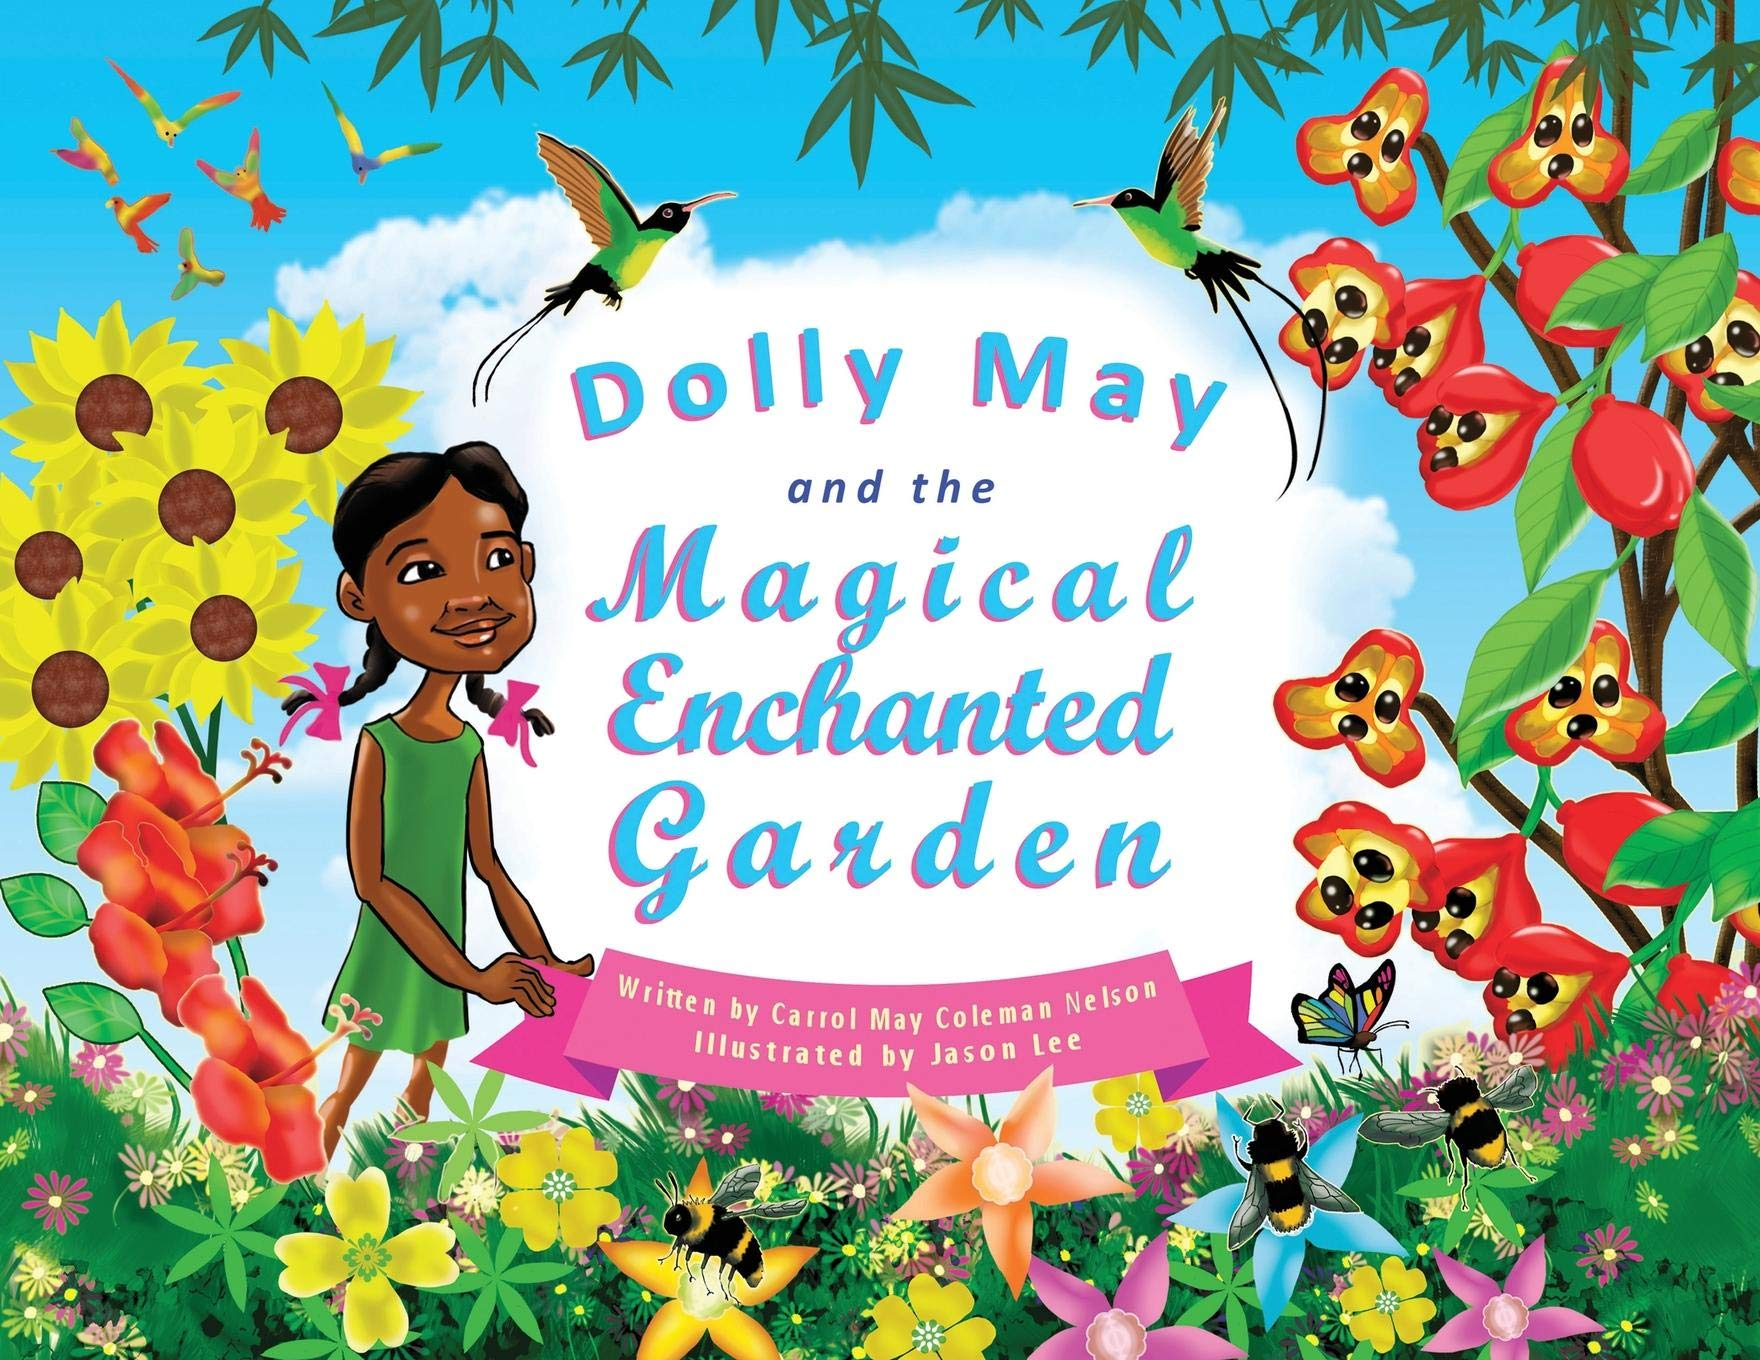 Dolly May and the Magical Enchanted Garden